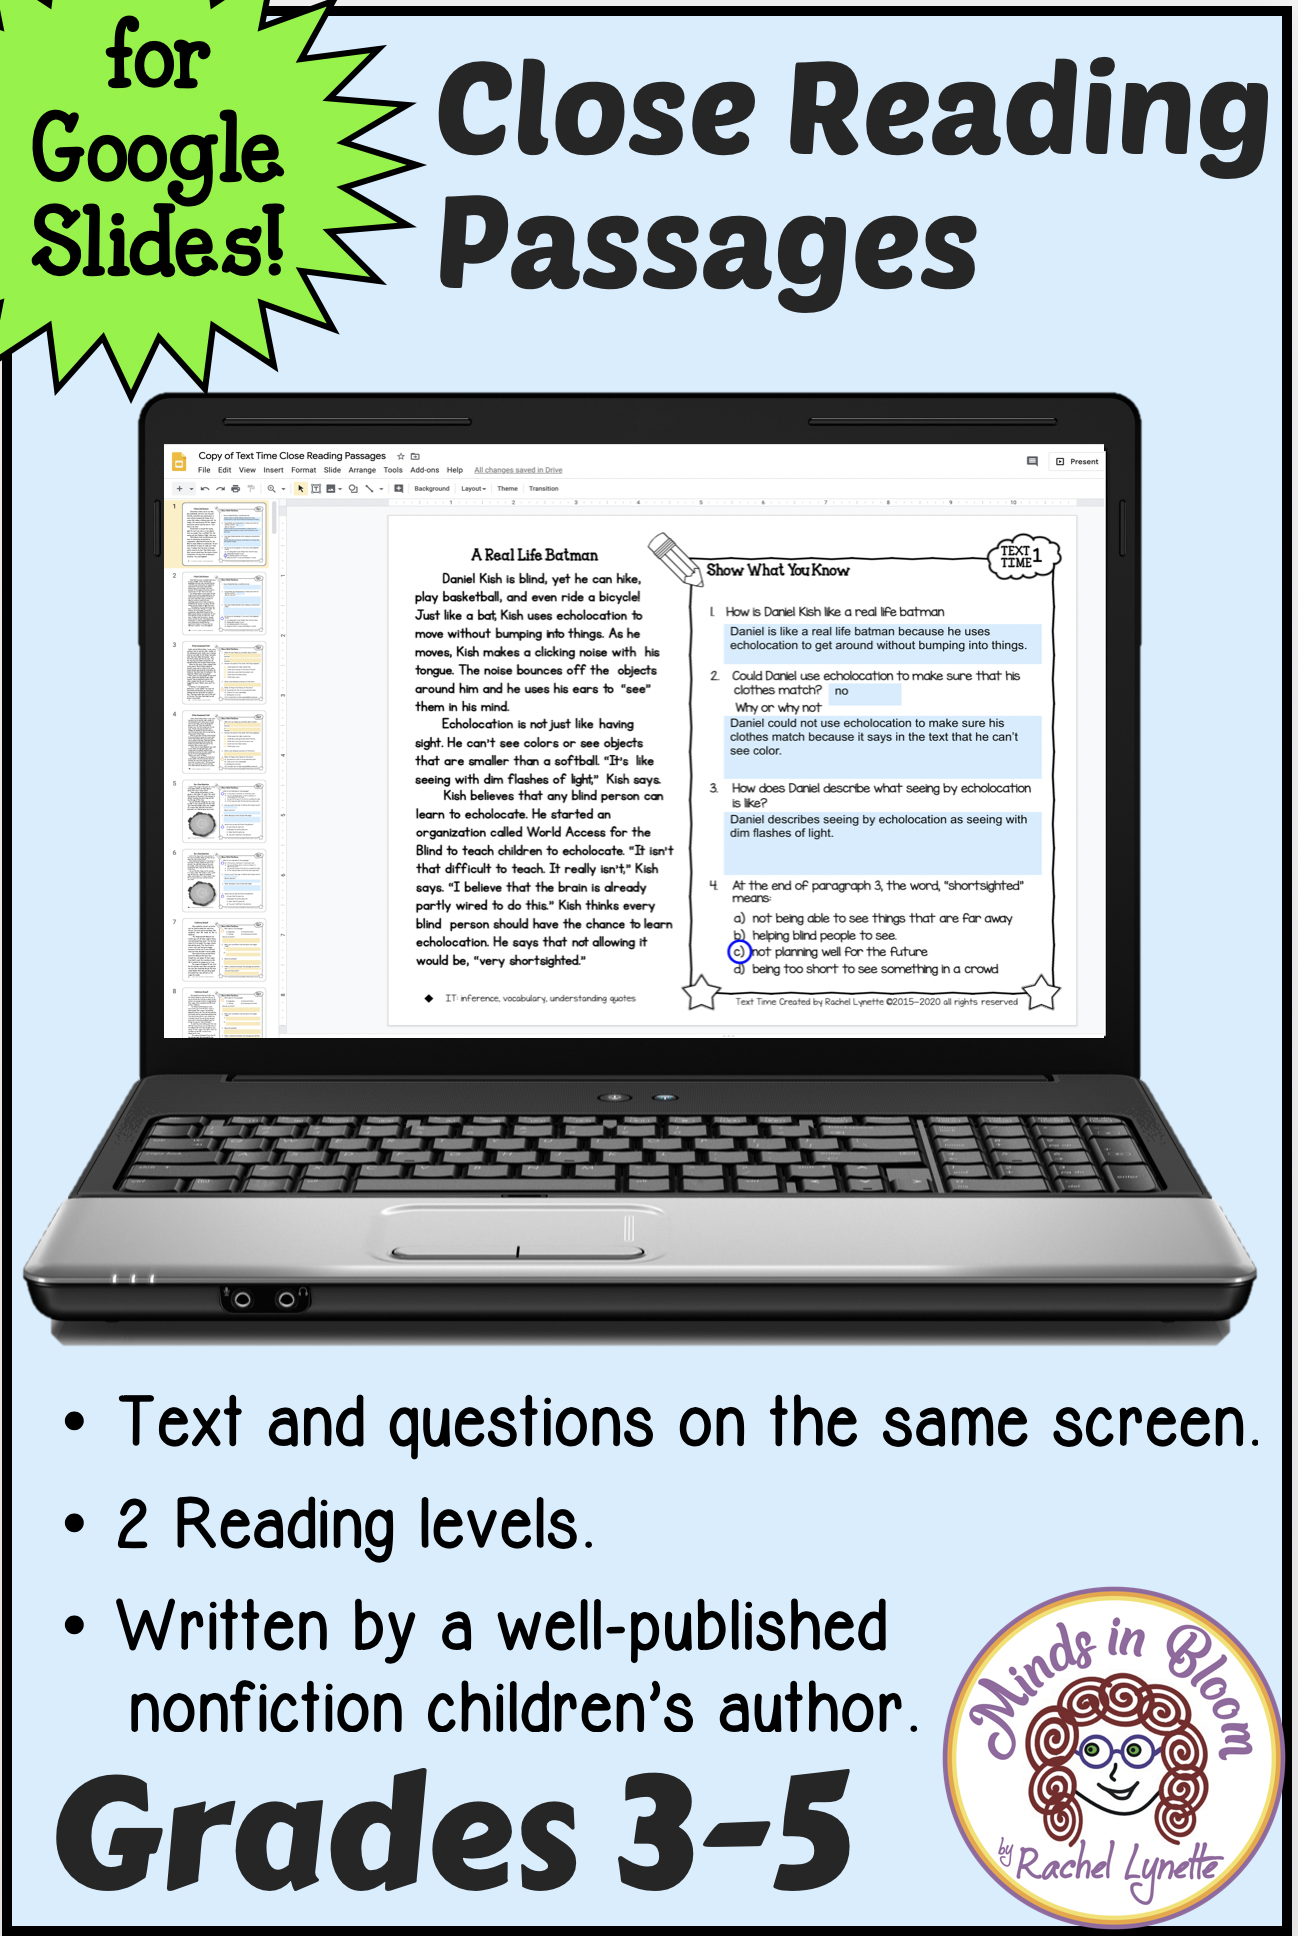 Text Time Close Reading Passages For Google Slides Reading Comprehension Passages Close Reading Comprehension Reading Comprehension [ 1936 x 1298 Pixel ]